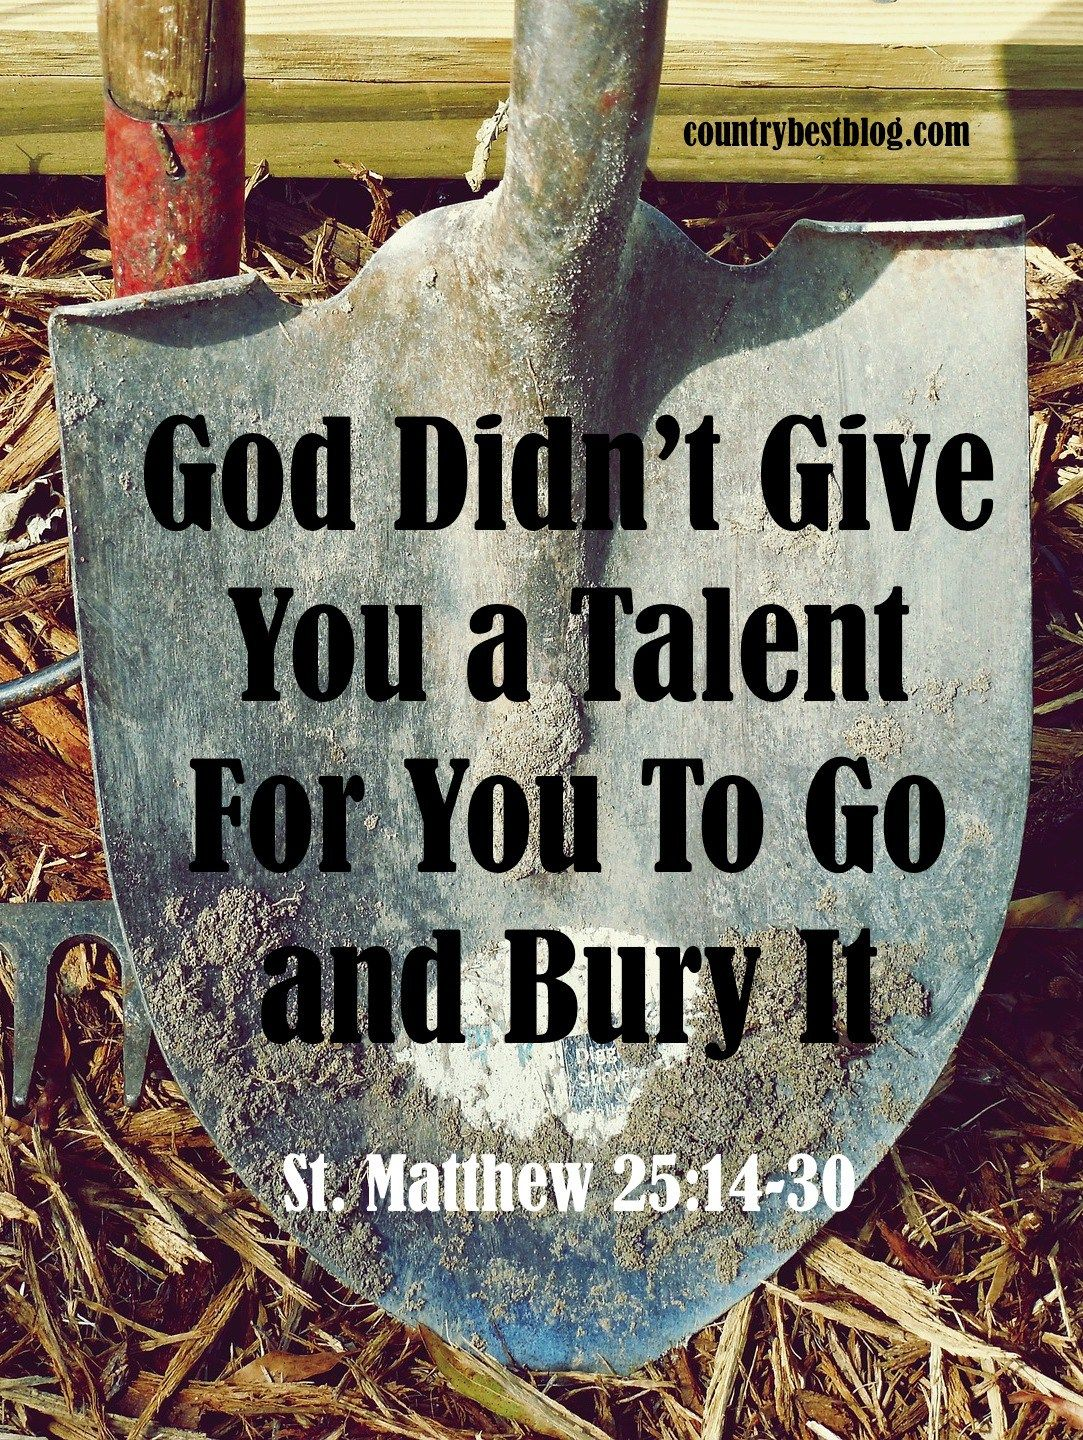 Christ S Parable Of The Talents God Didn T Give You A Talent For You To Go And Bury It Countrybestblog Bible Lessons Talent Quotes Youth Bible Study Lessons